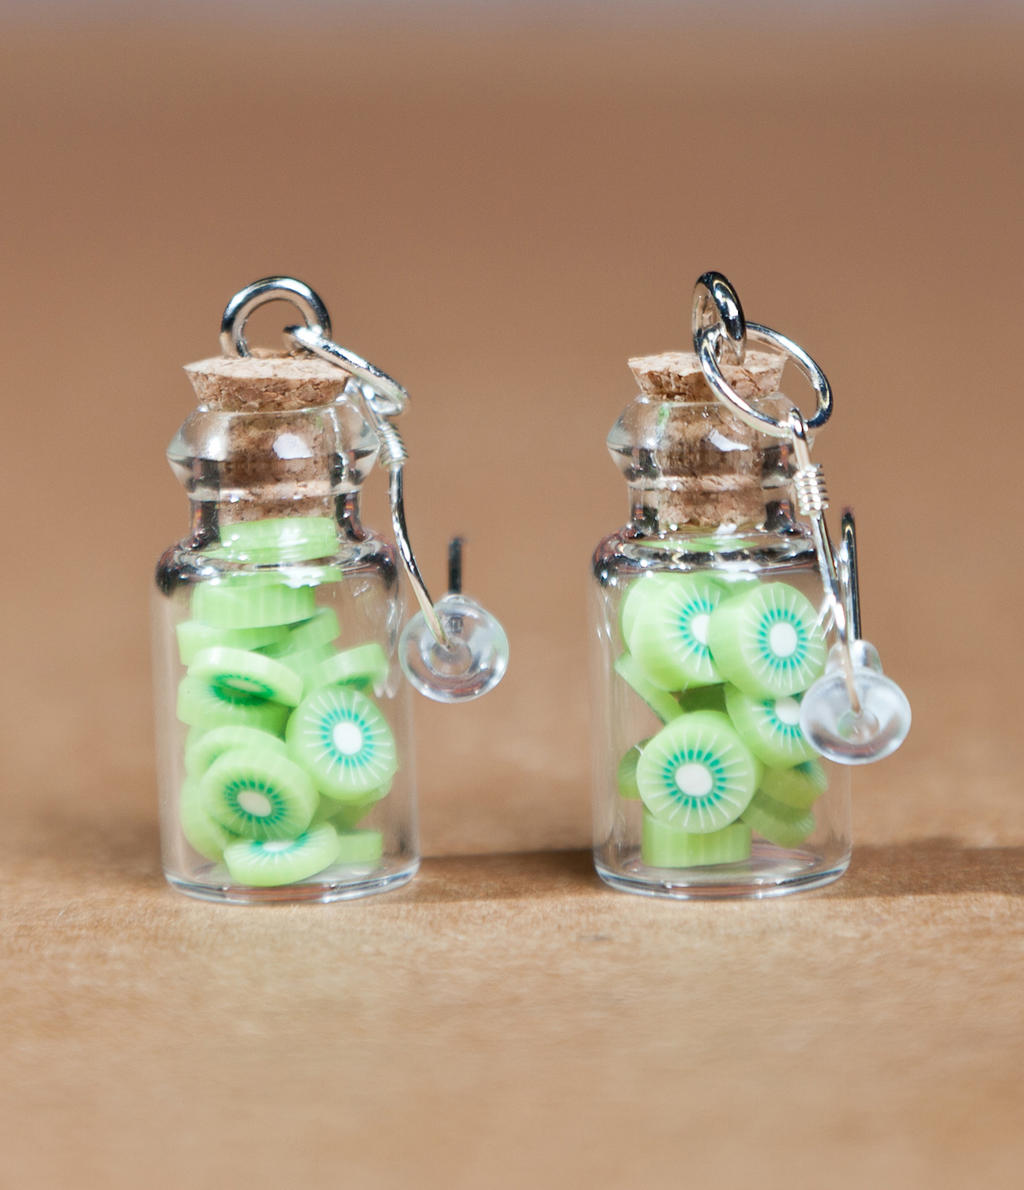 Bottled Kiwi Earrings by SweetSugaRush